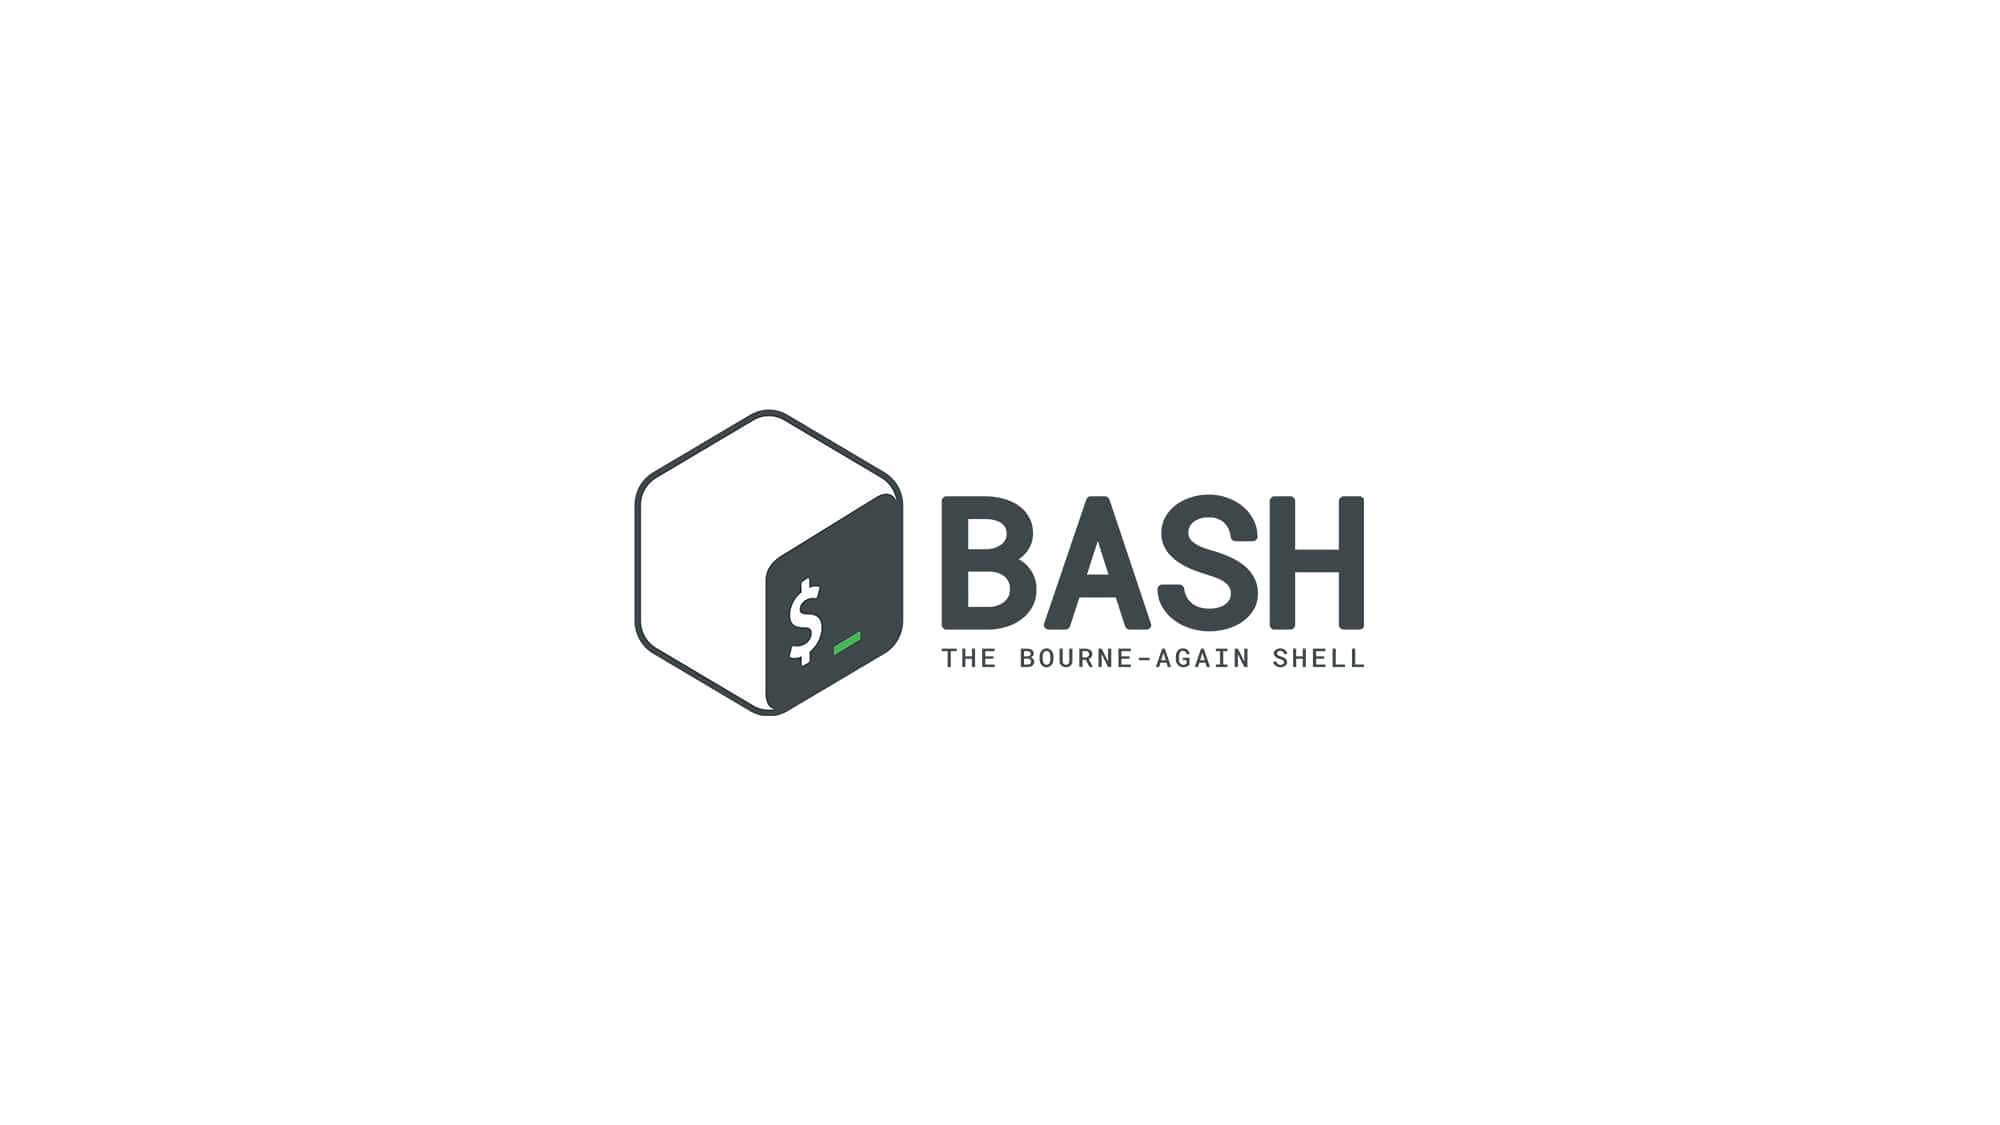 Come usare Until Loop in Bash su Linux